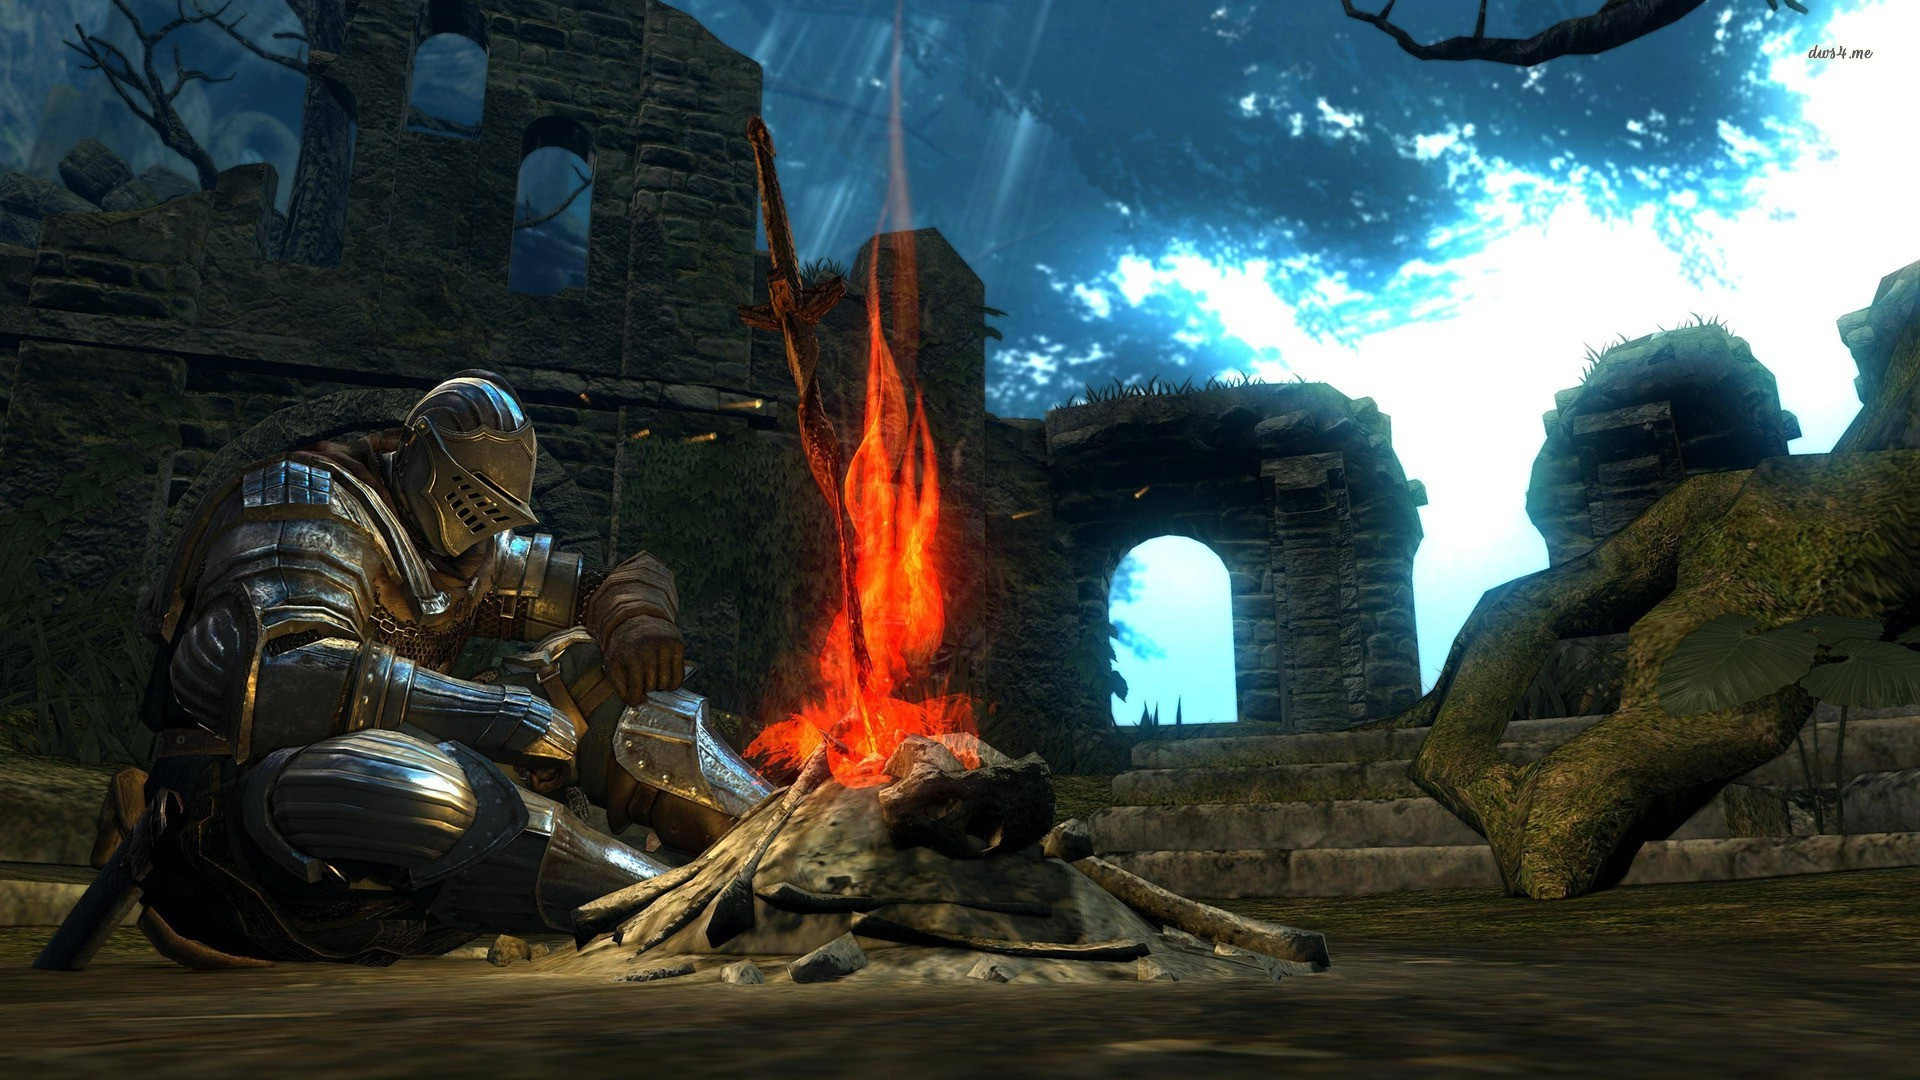 A knight rests at the Firelink Shrine bonfire in the original Dark Souls